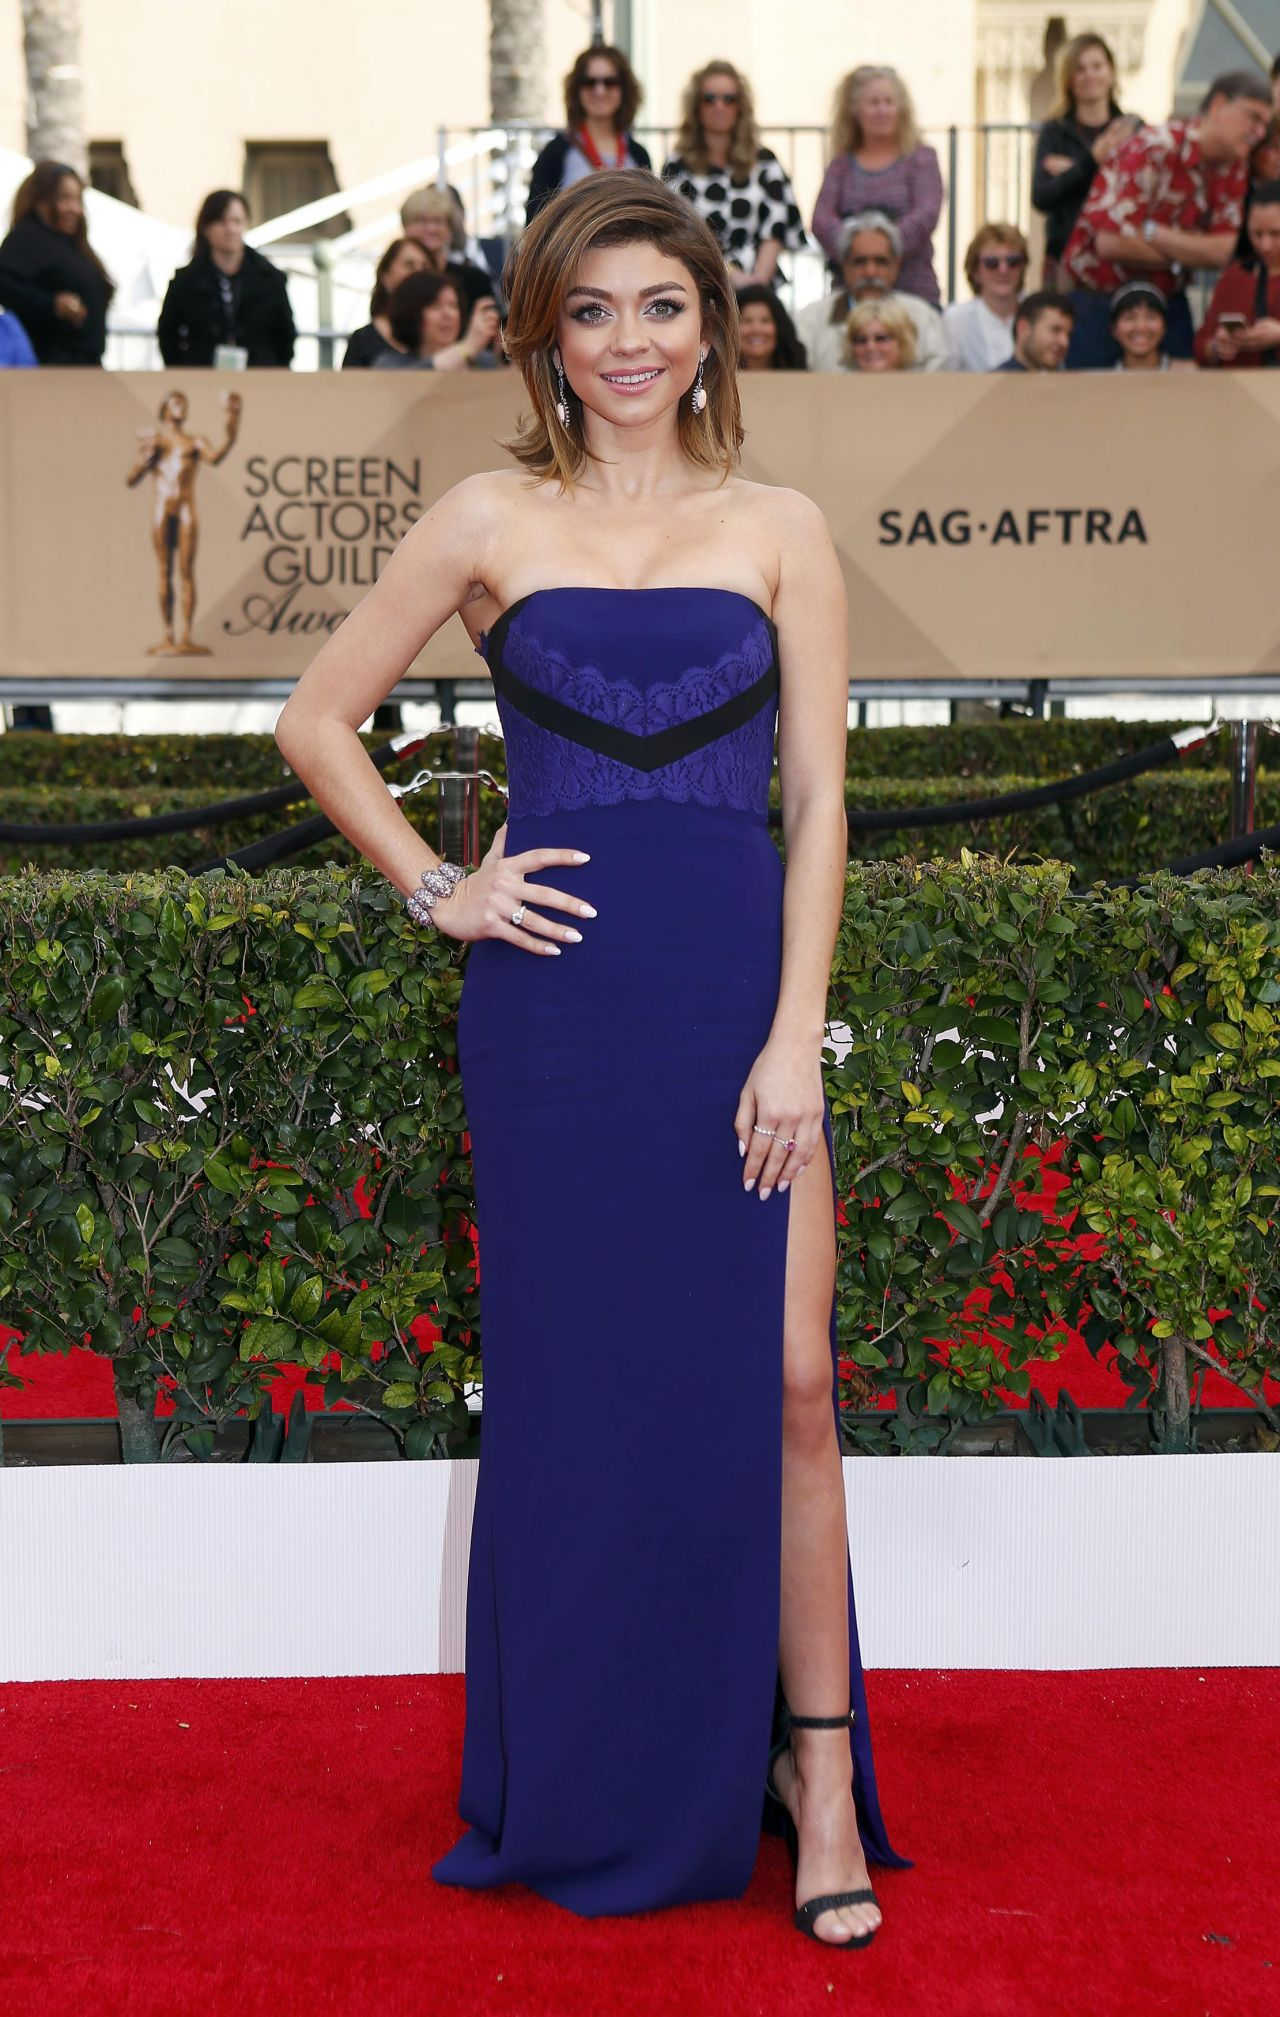 sarah-hyland-sag-awards-2016-at-shrine-auditorium-in-los-angeles-1